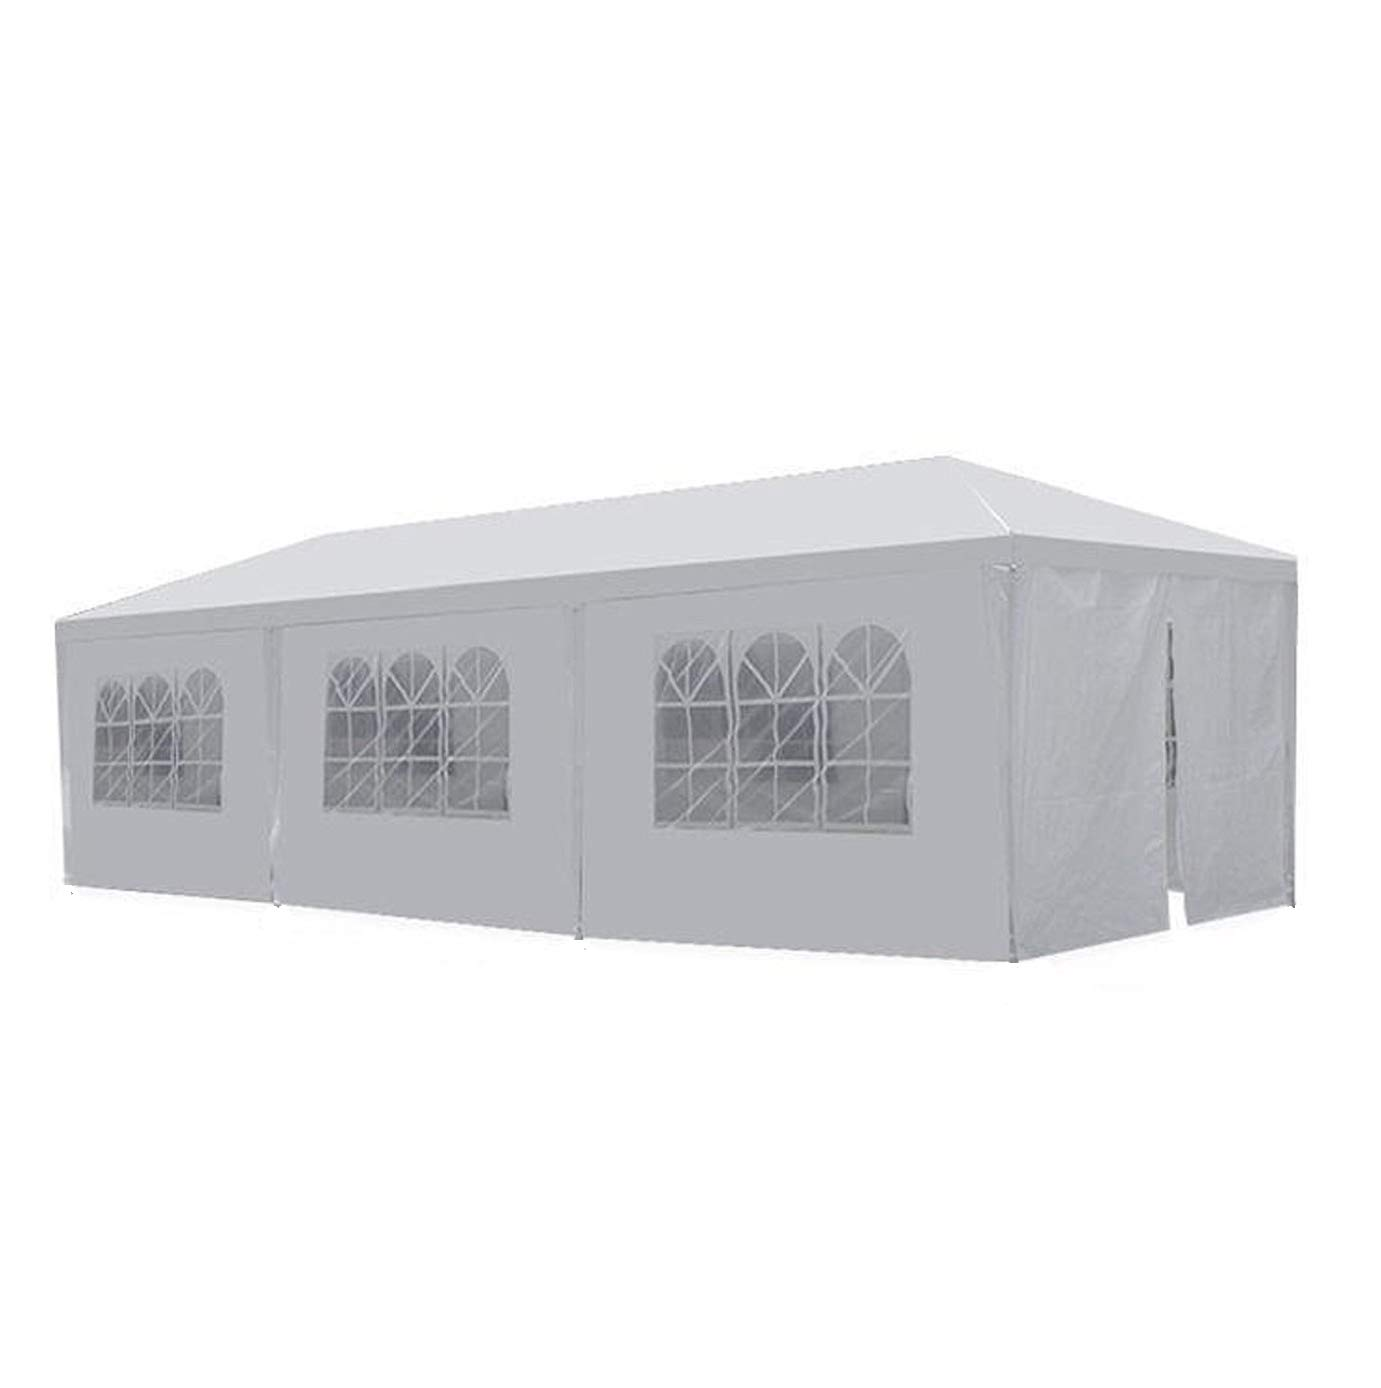 GOJOOASIS Canopy Tent Wedding Party Tent 10' x 30' with 8 Removable Walls Outdoor Gazebo by GOJOOASIS